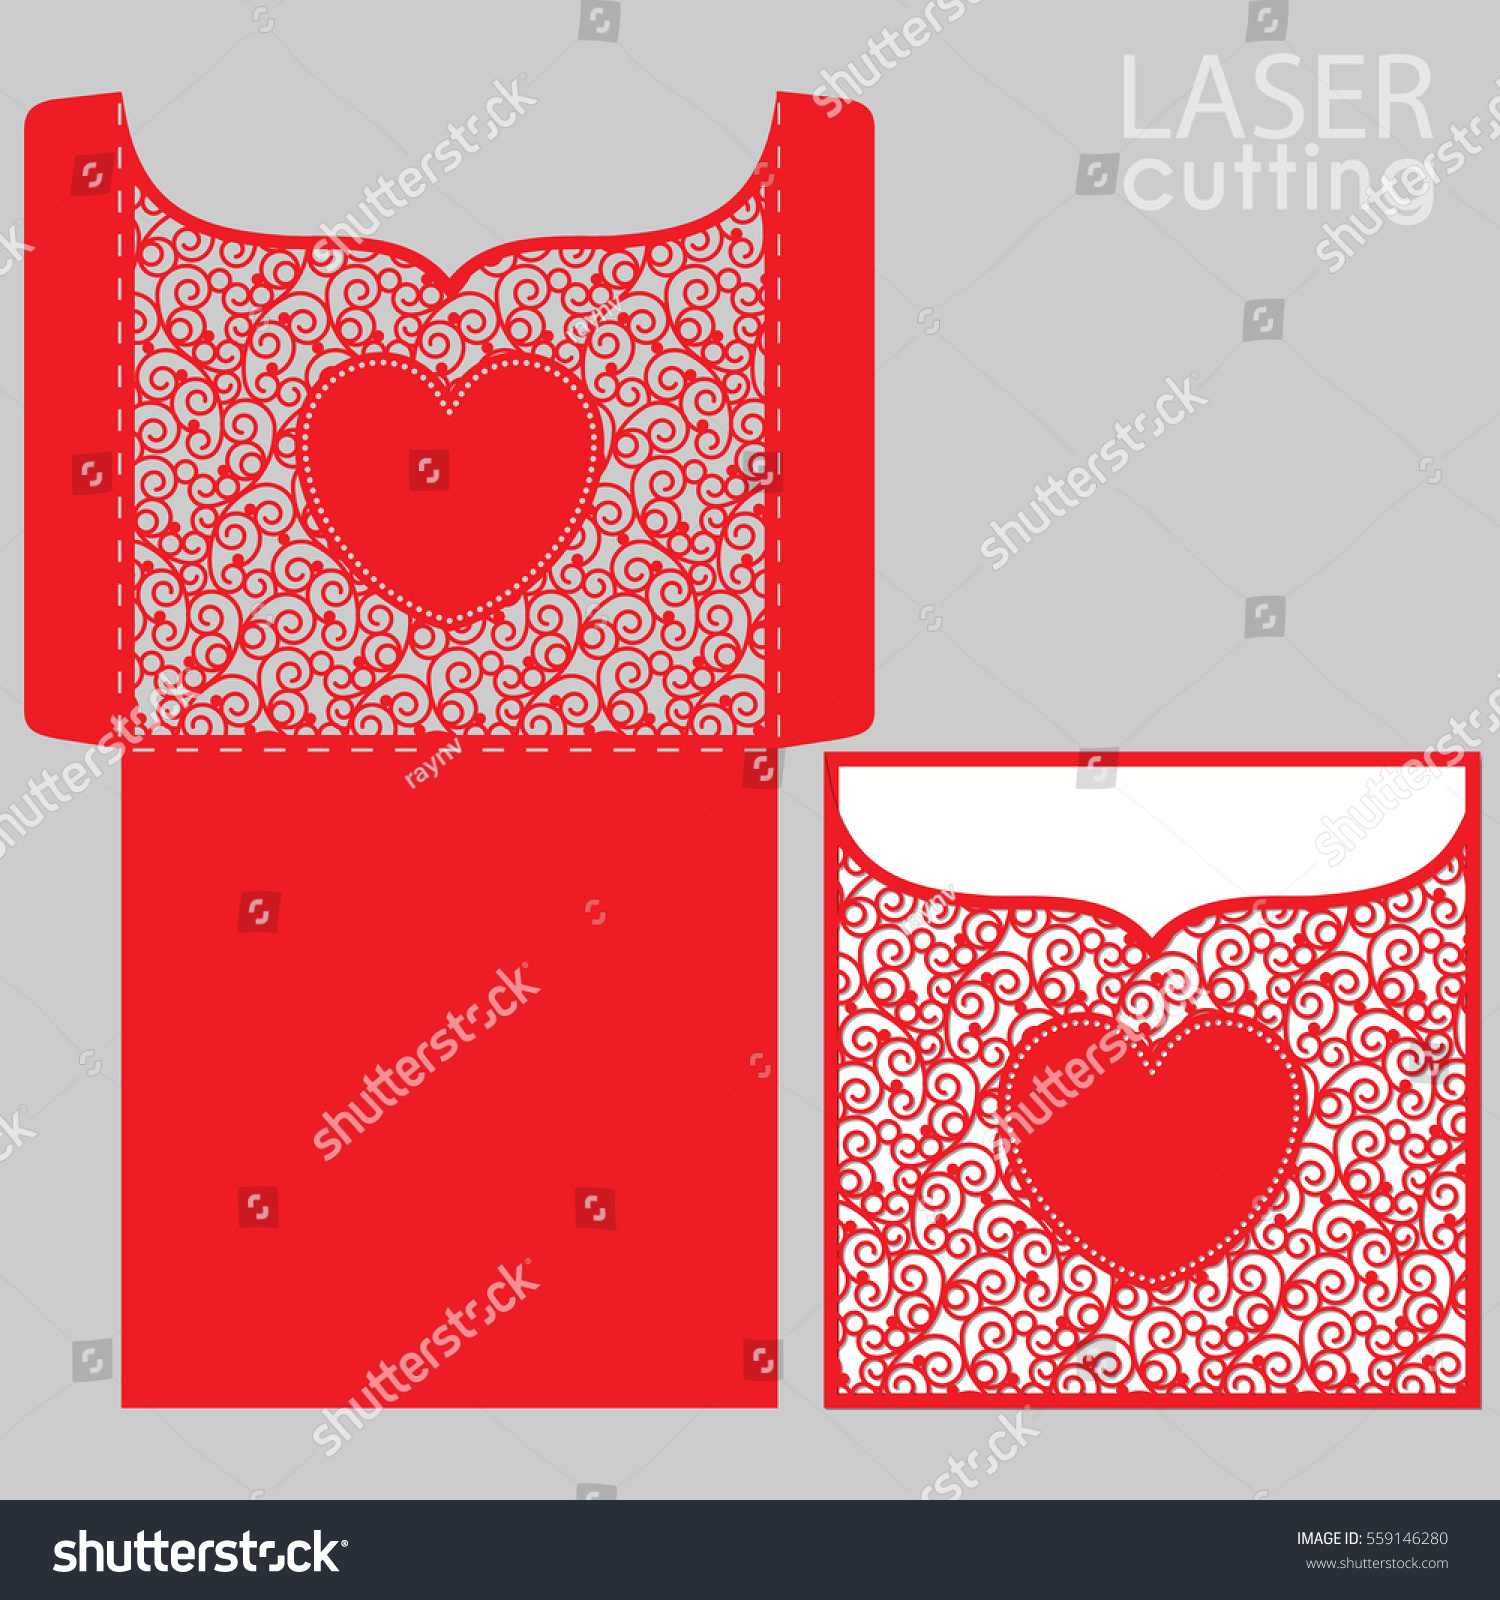 Die Laser Cut Wedding Card Vector Stock Vector (Royalty Free ...